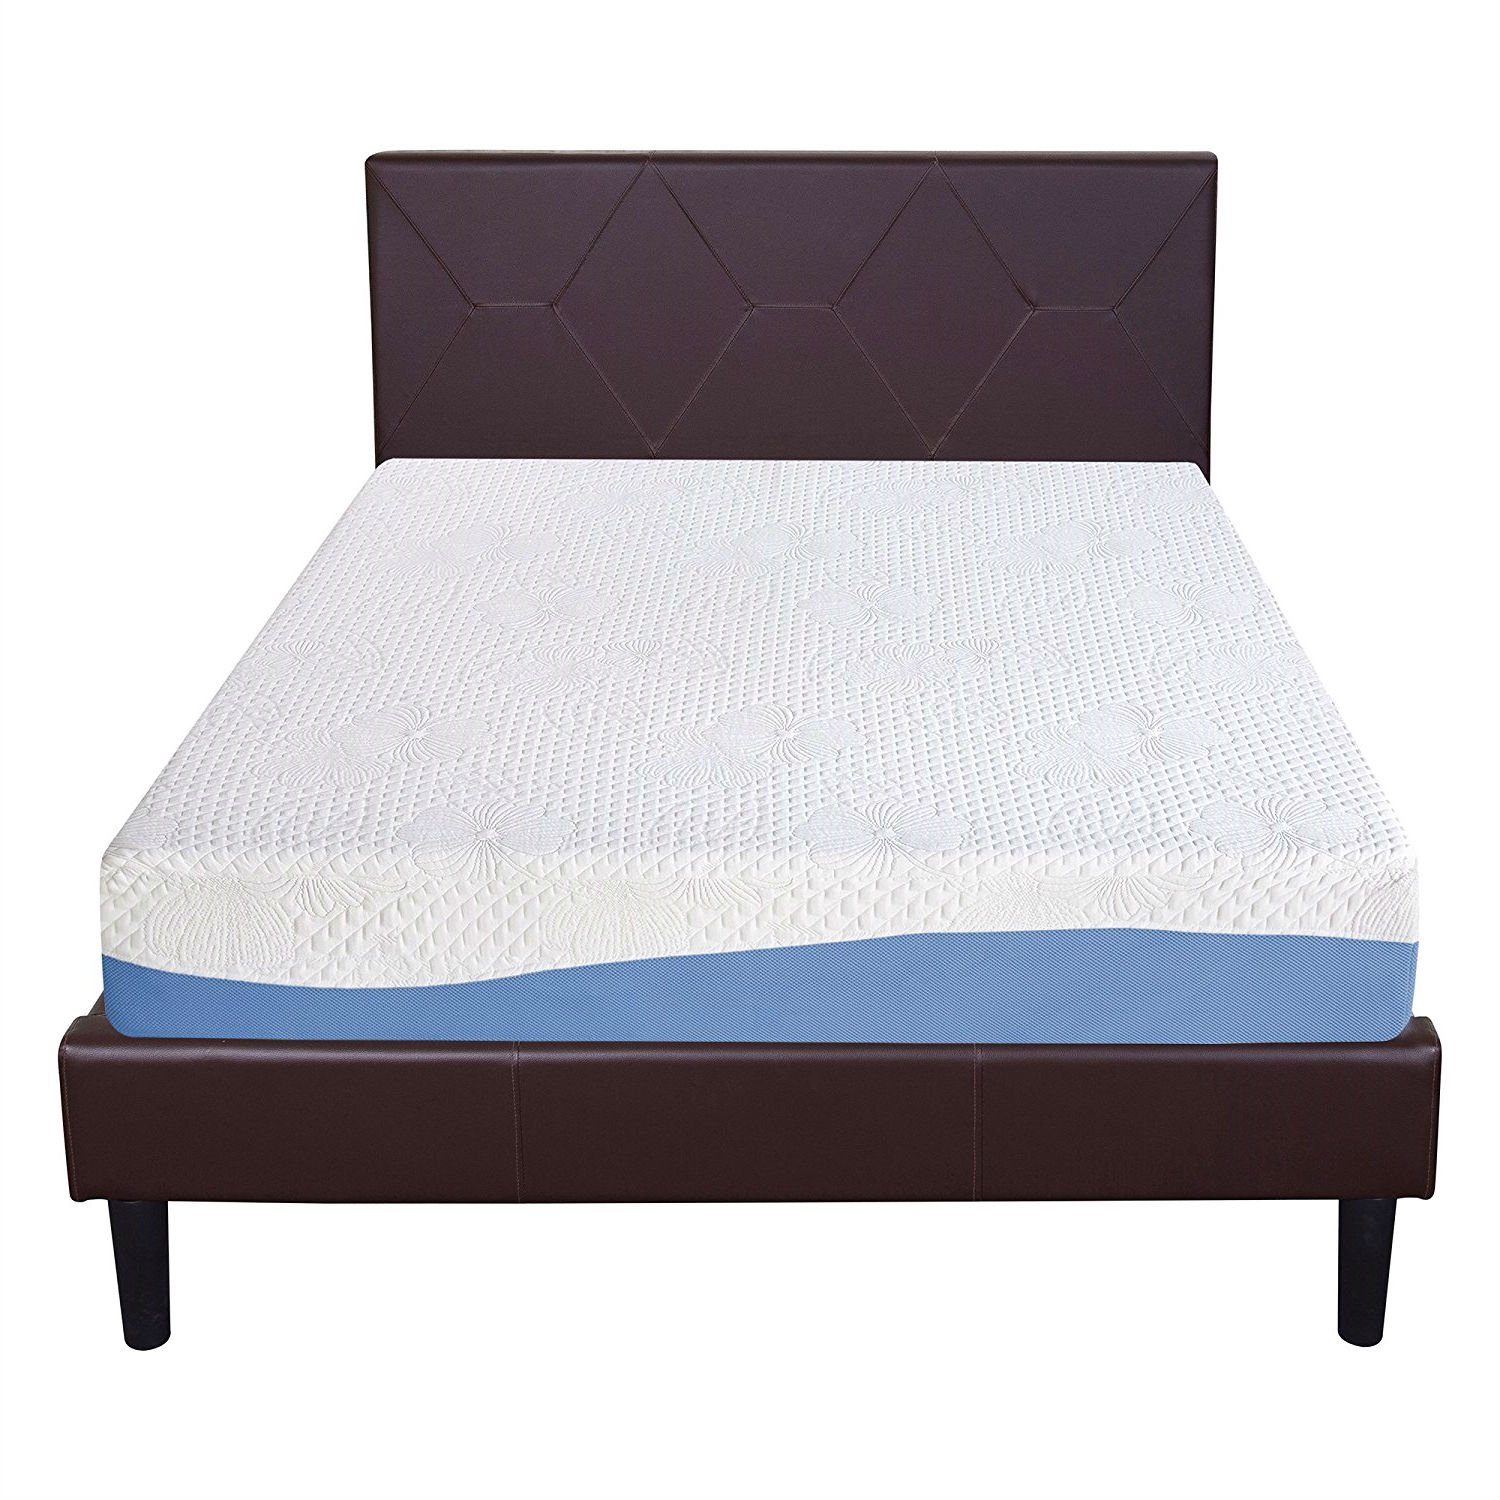 Queen size 10-inch Memory Foam Mattress with Gel Infused ...